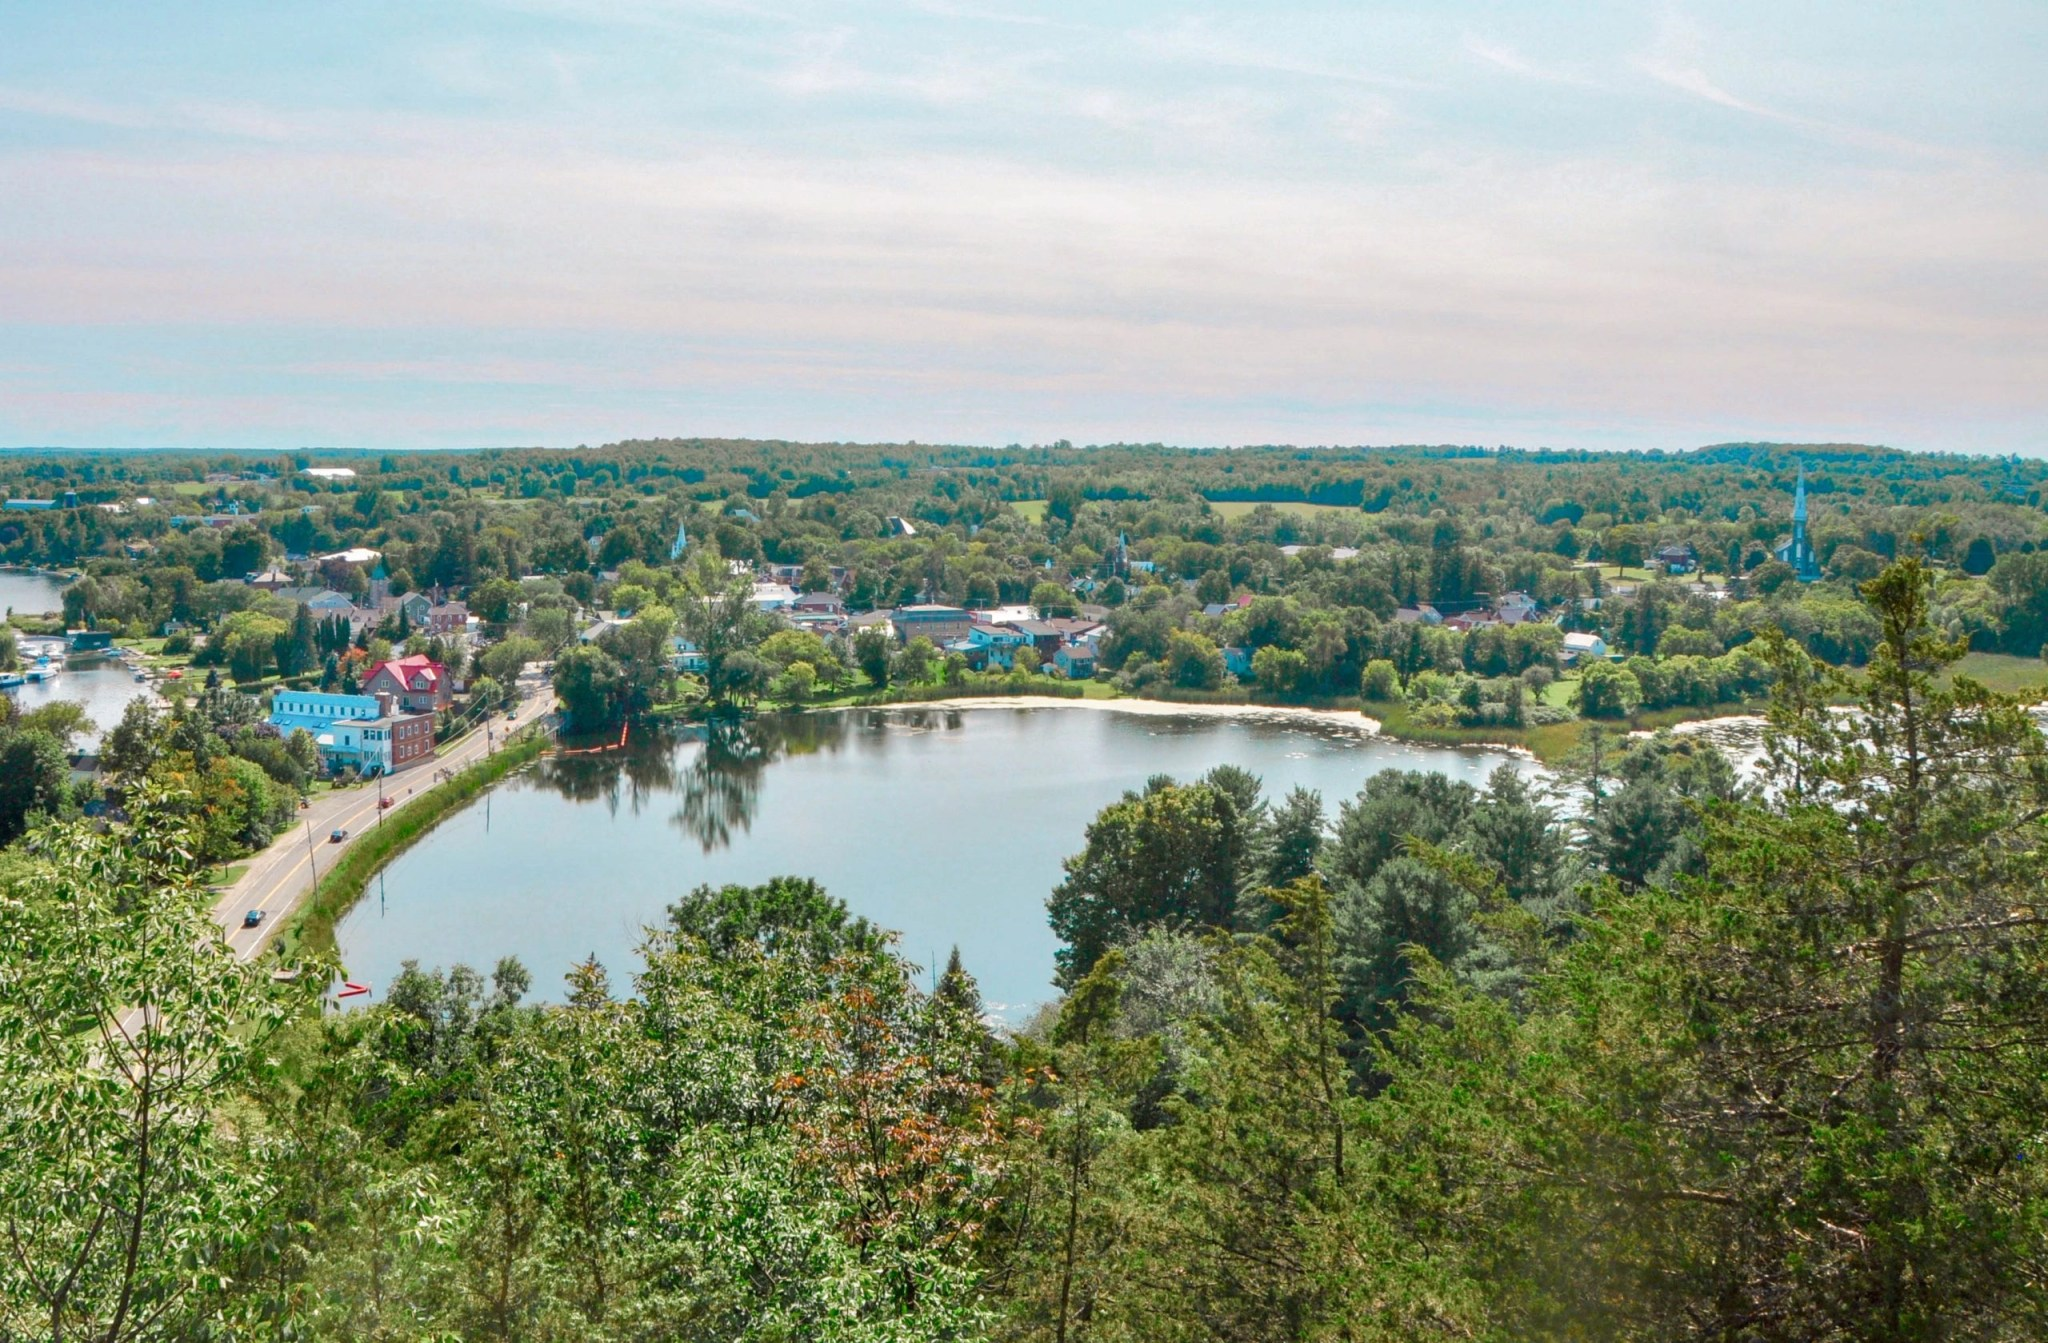 What to do in Westport Ontario for a Day